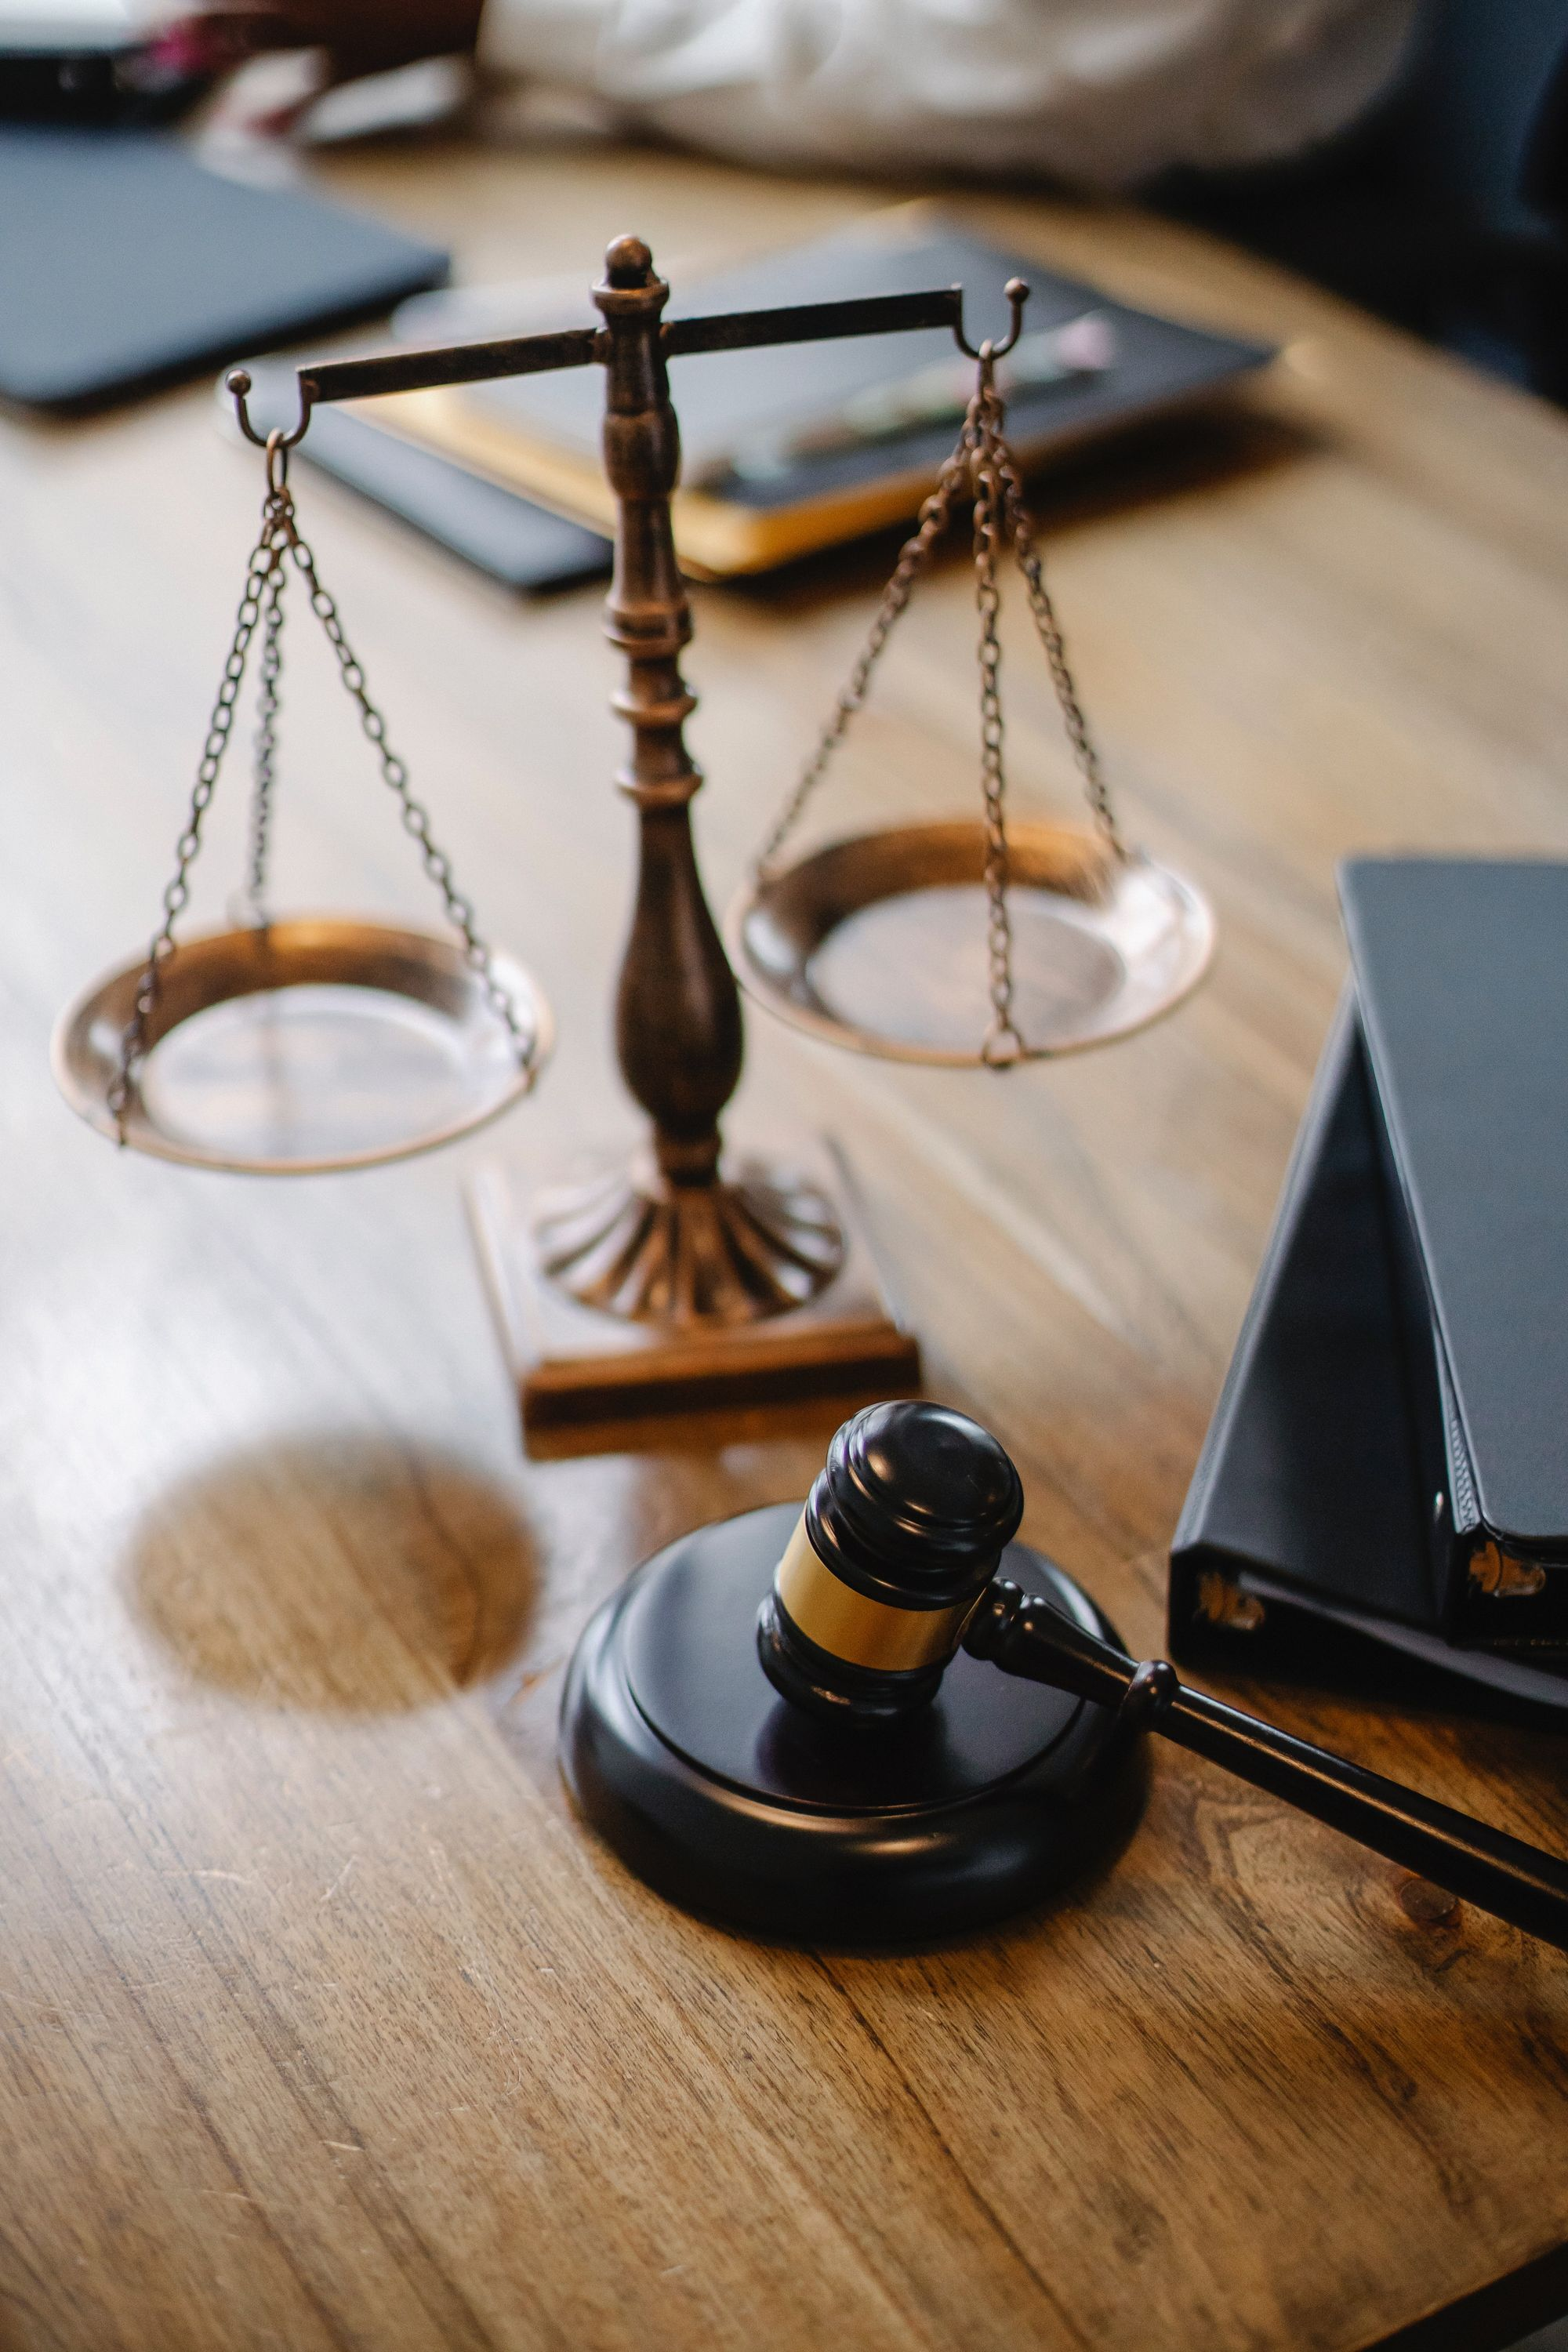 How can tech and AI integration transform the judiciary system in the coming decade?